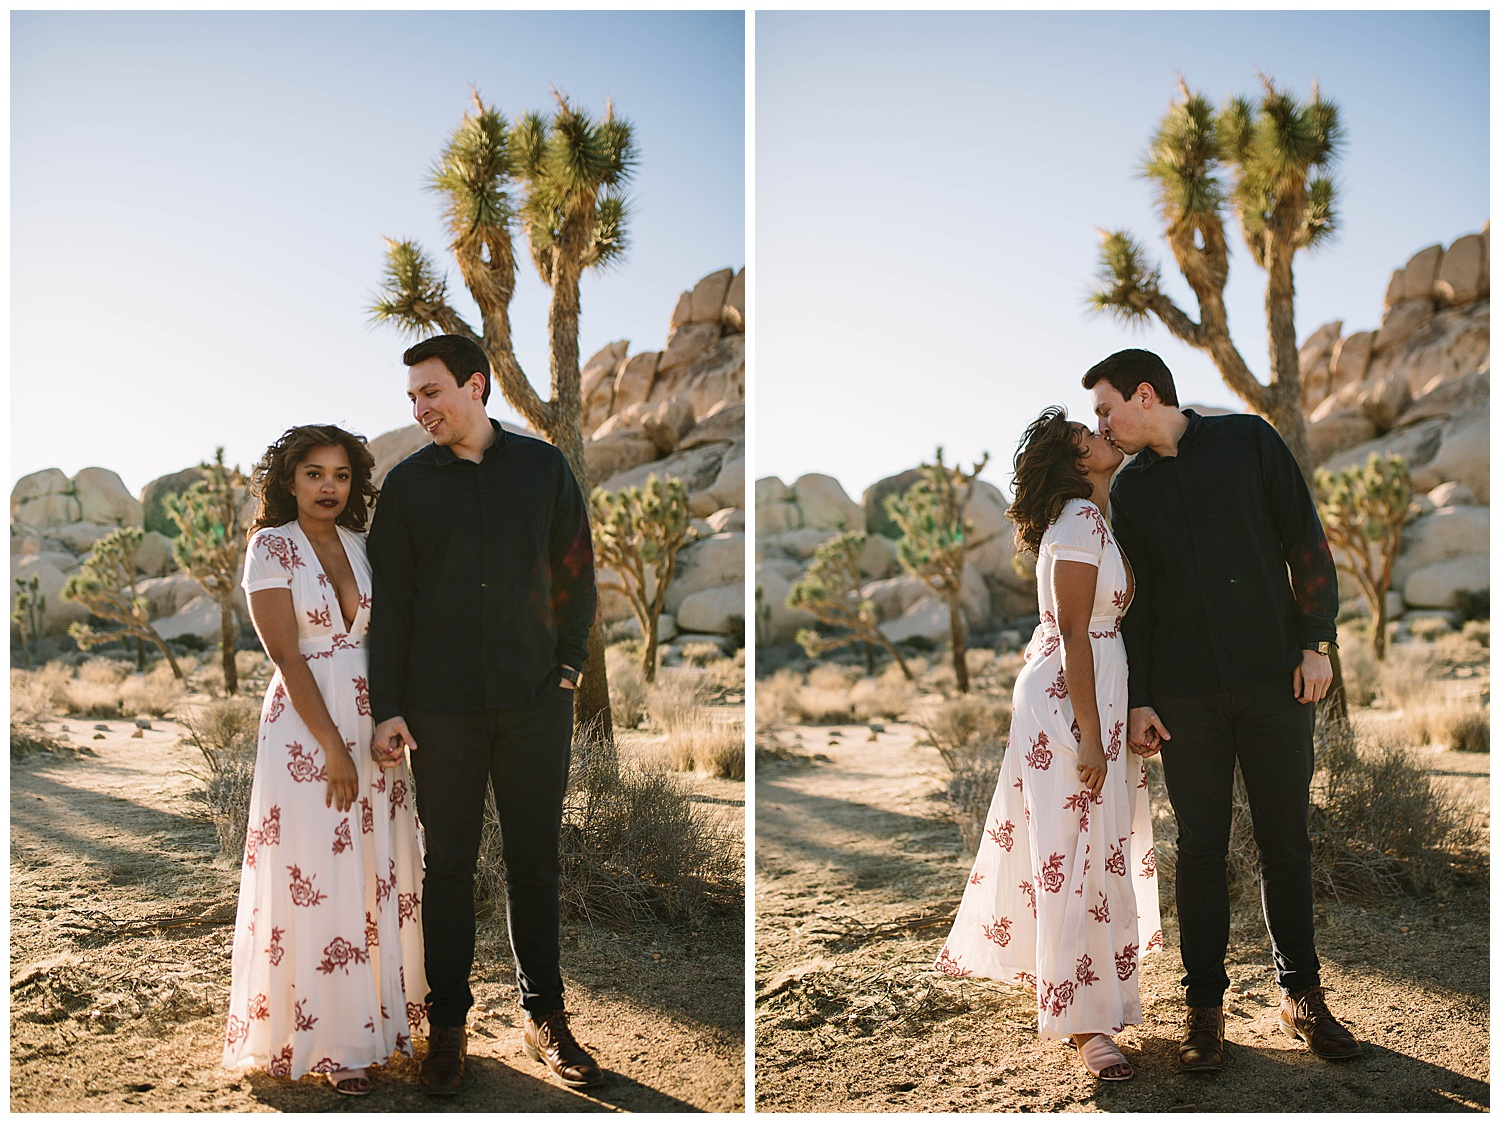 la.lifestyle.photography.session.engaged.malibu.joshuatree.kendralynnephotography-10.jpg